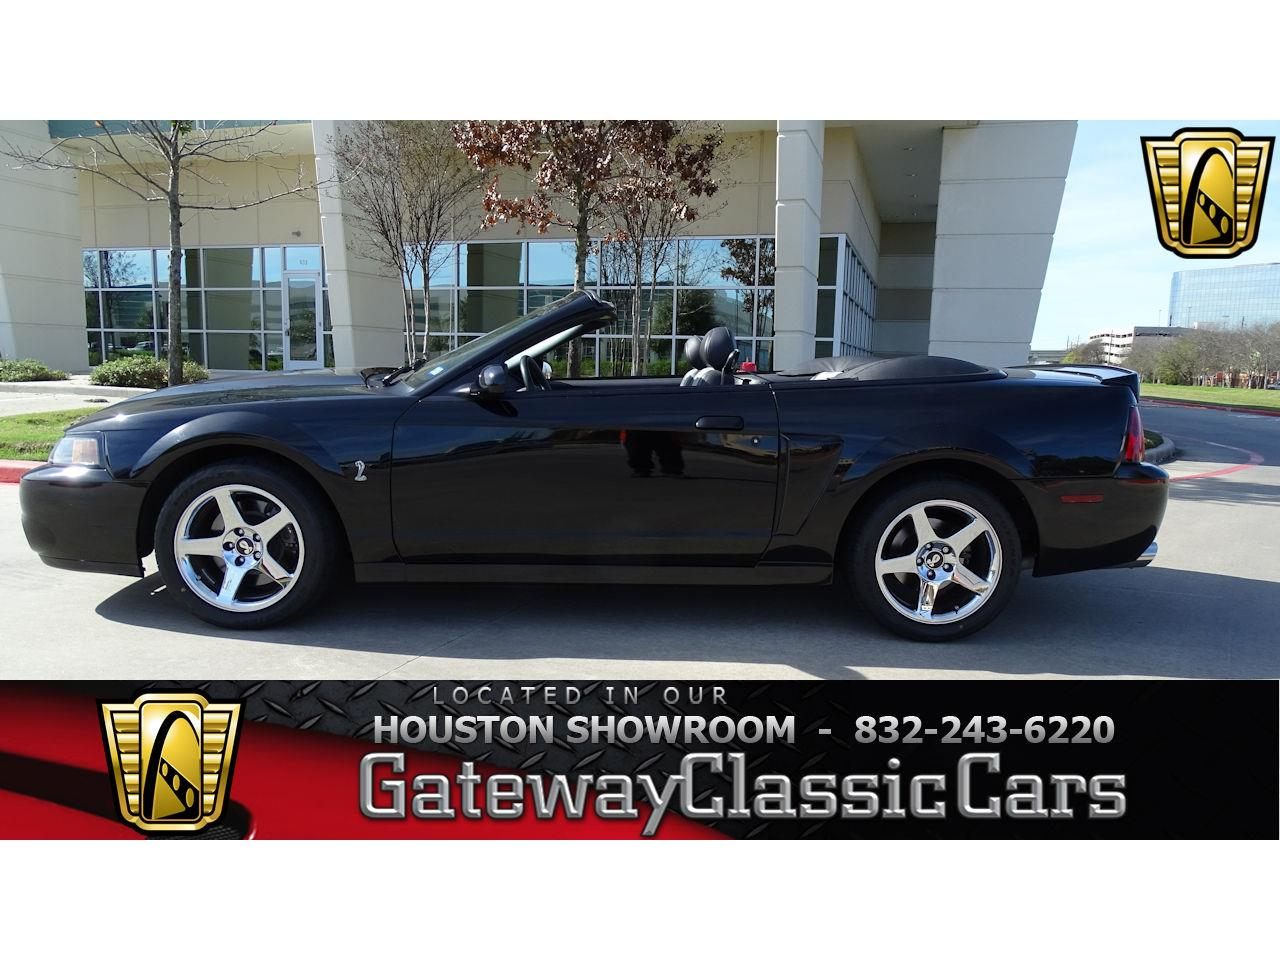 Large Picture of '03 Ford Mustang located in Texas - $27,995.00 Offered by Gateway Classic Cars - Houston - KES2